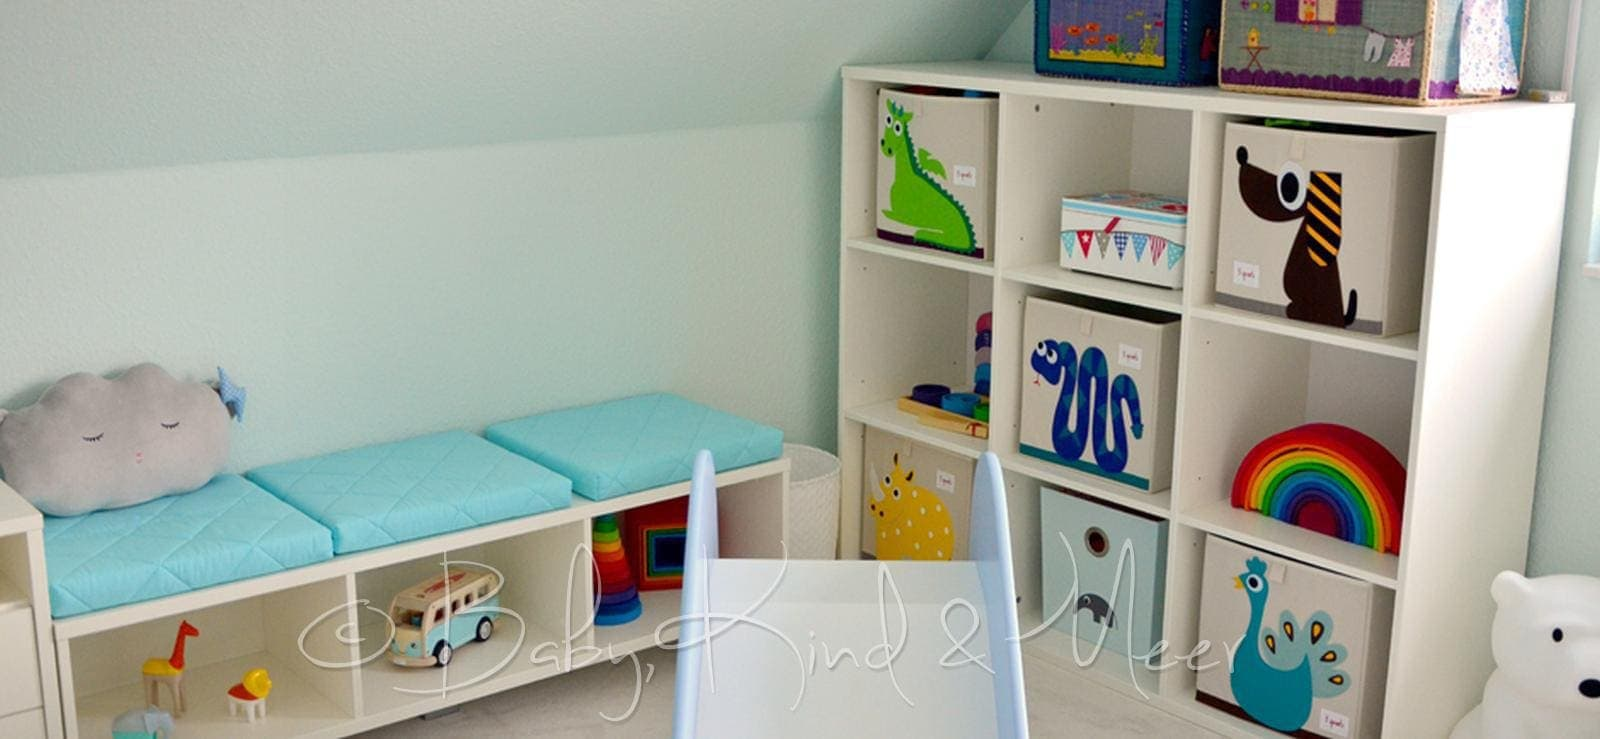 aufbewahrungsk rbe f rs kinderzimmer deko sch nes mehr kinderzimmer co baby kind und. Black Bedroom Furniture Sets. Home Design Ideas